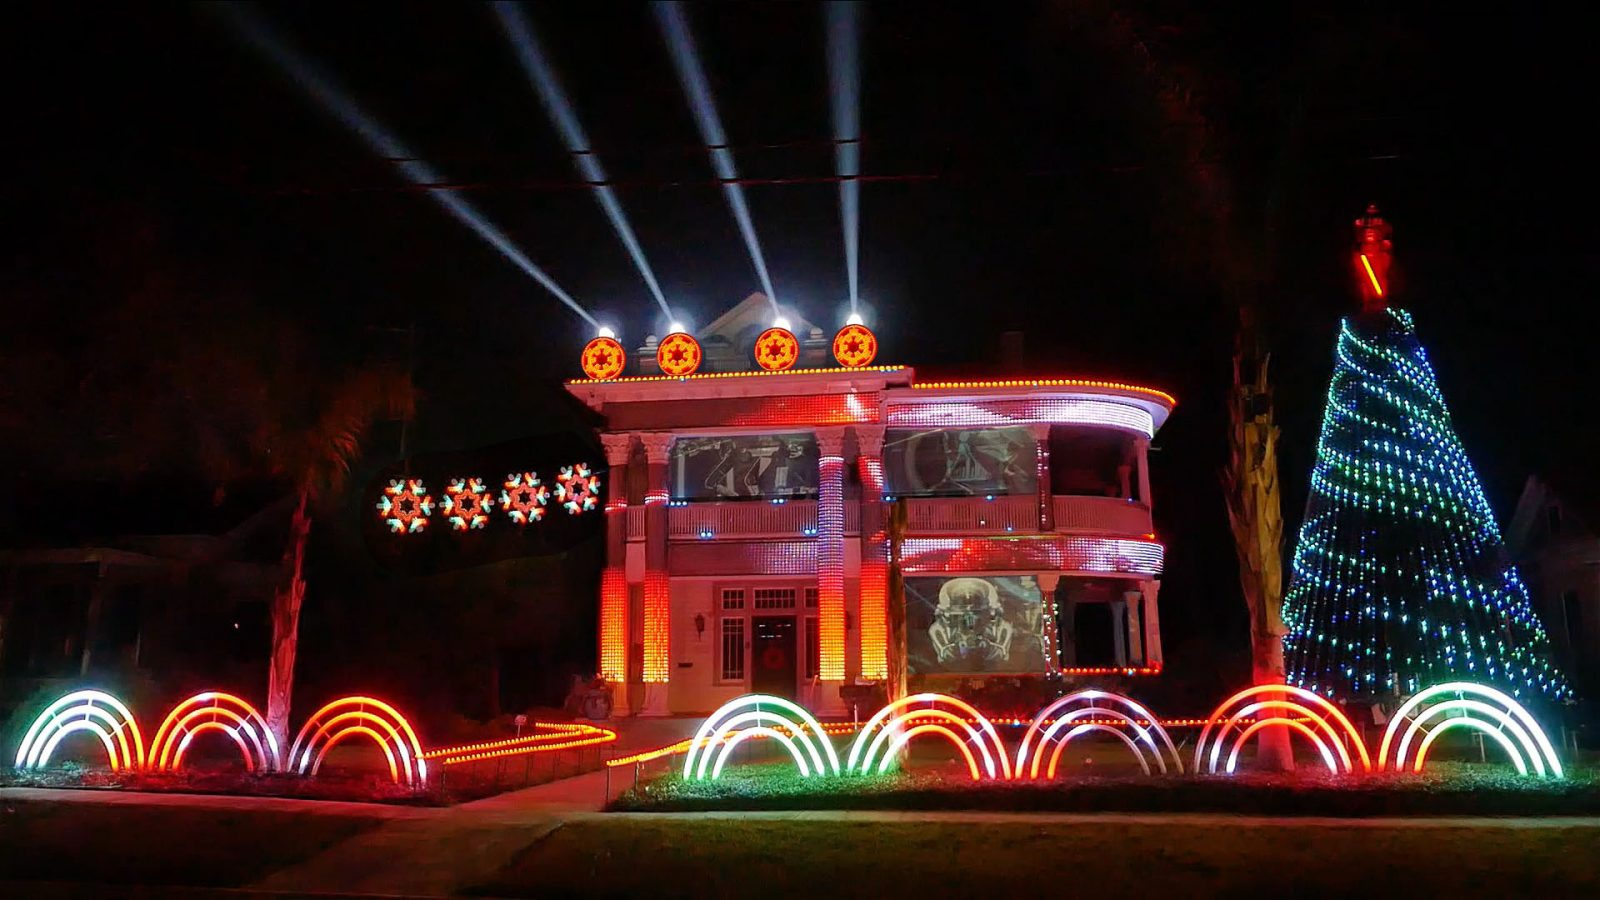 2017 Star Wars Light Show by LLS